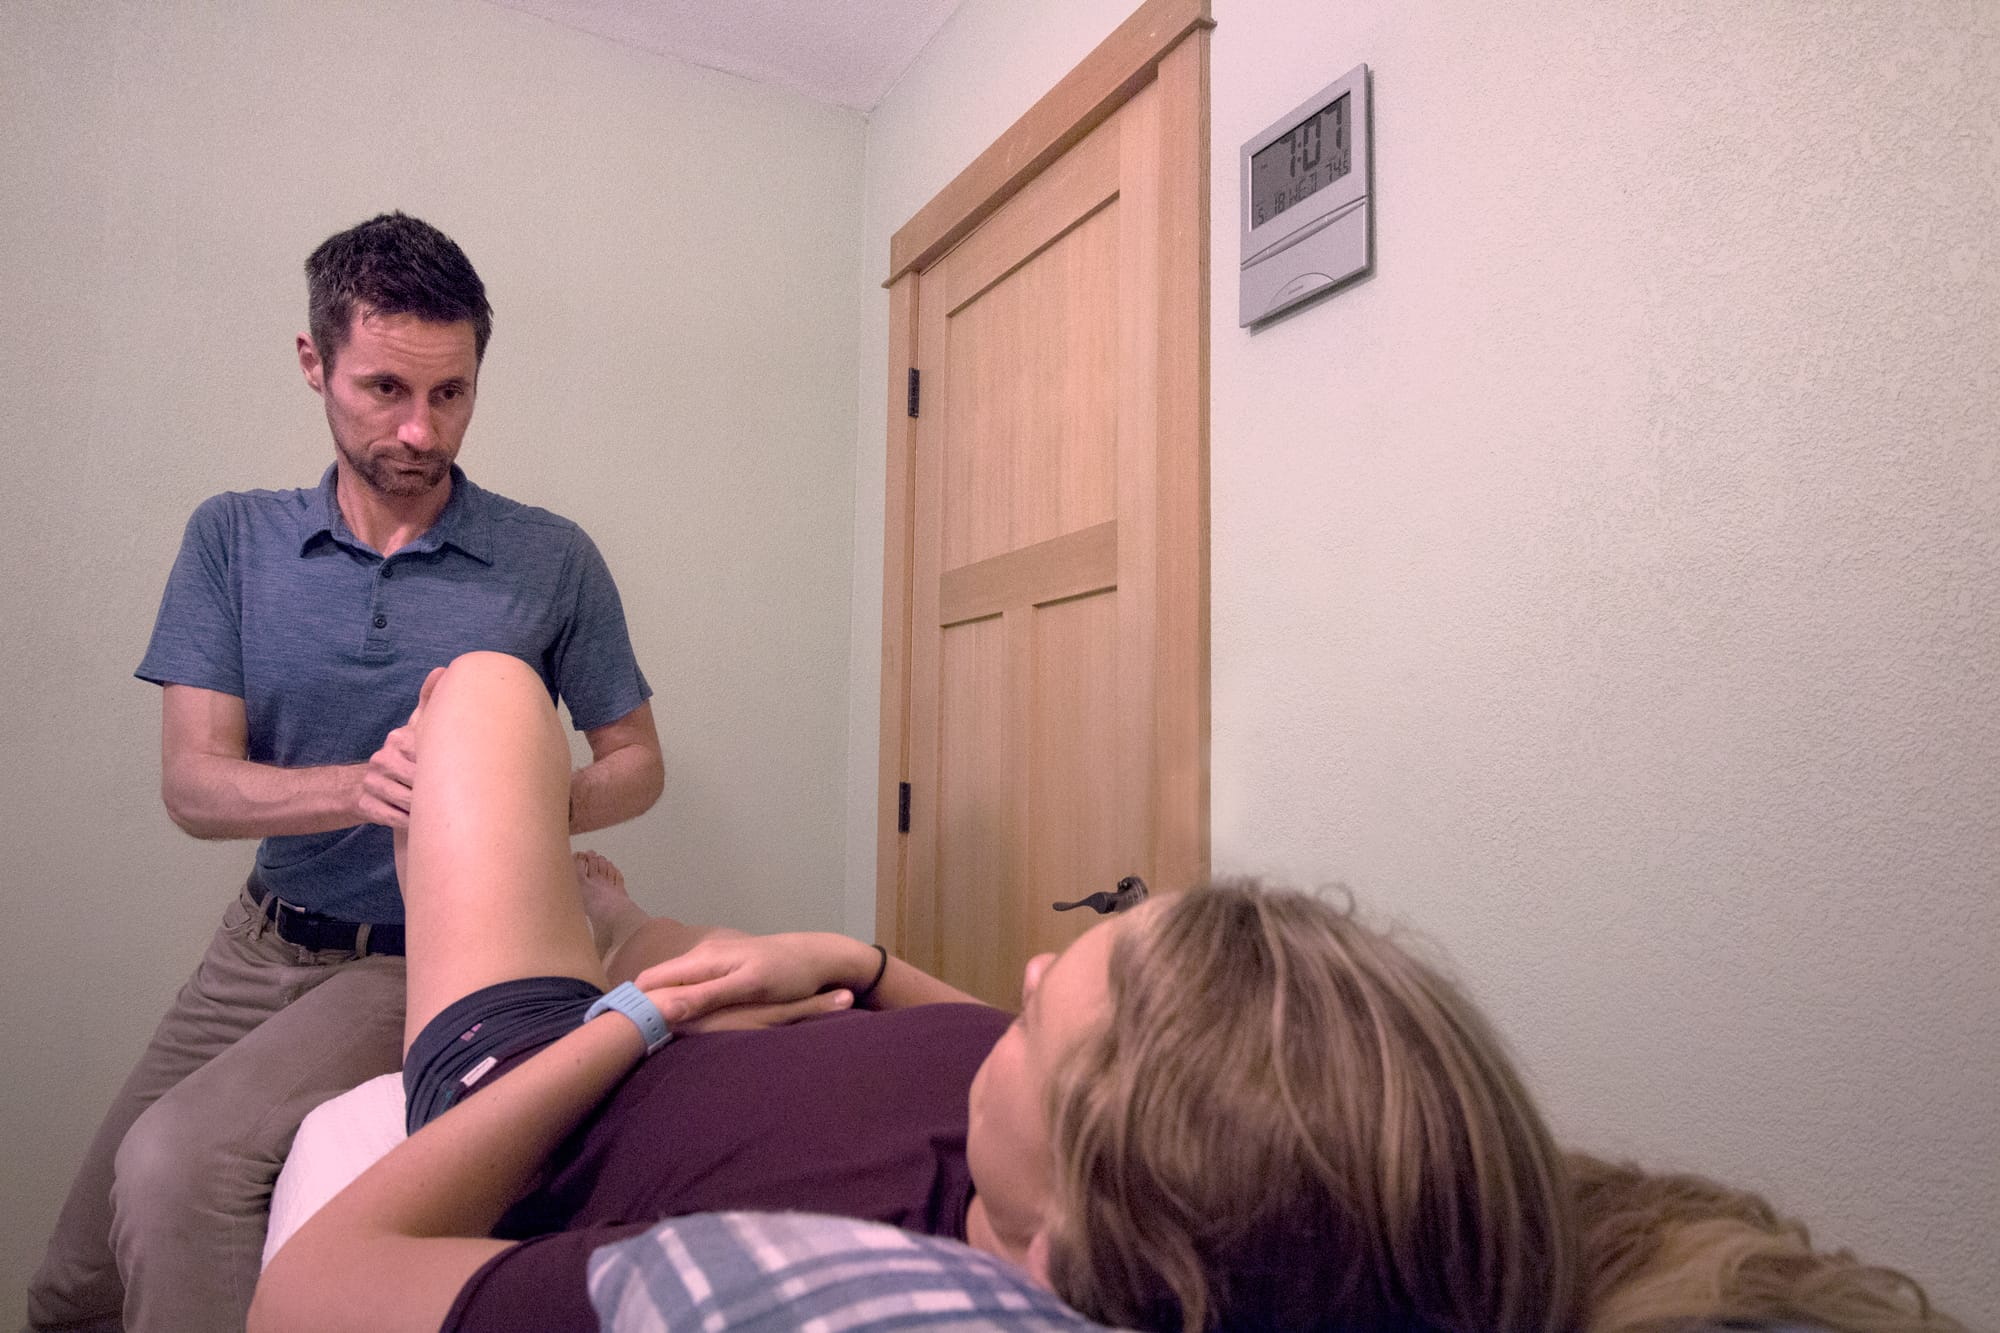 Lower back physical therapy by Joe Uhan